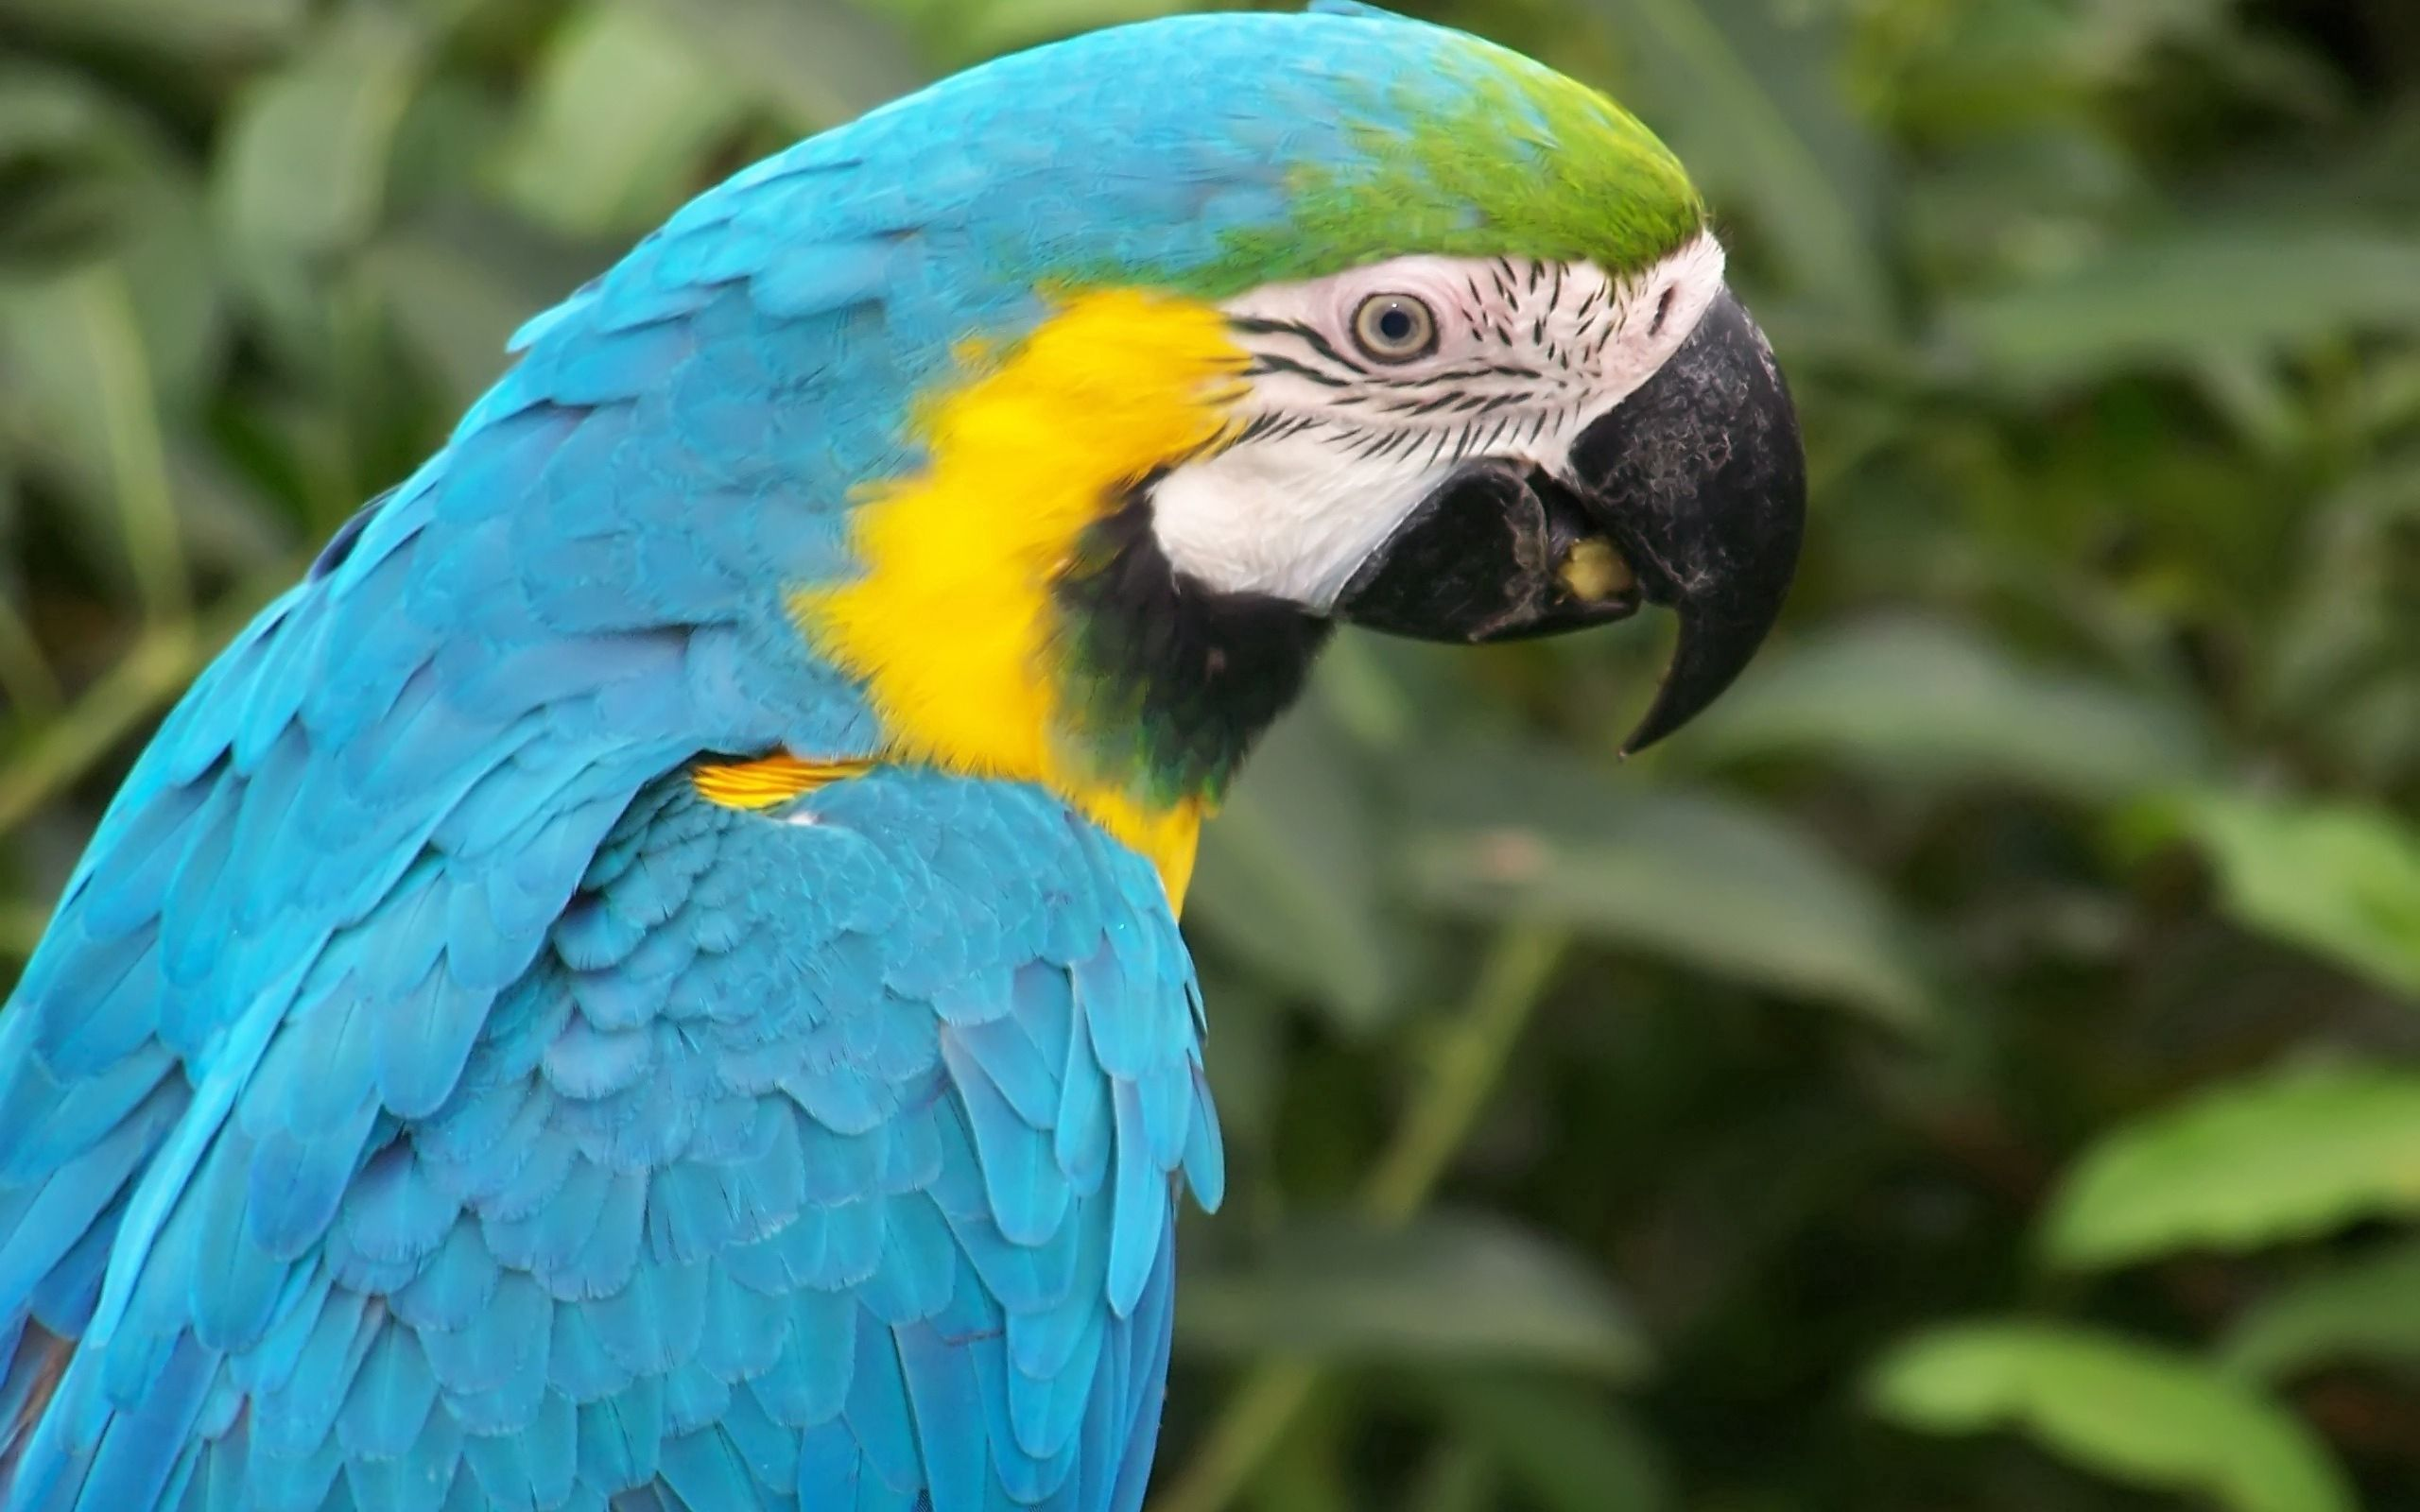 111687 download wallpaper Animals, Parrot, Multicolored, Motley, Beak, Feather screensavers and pictures for free